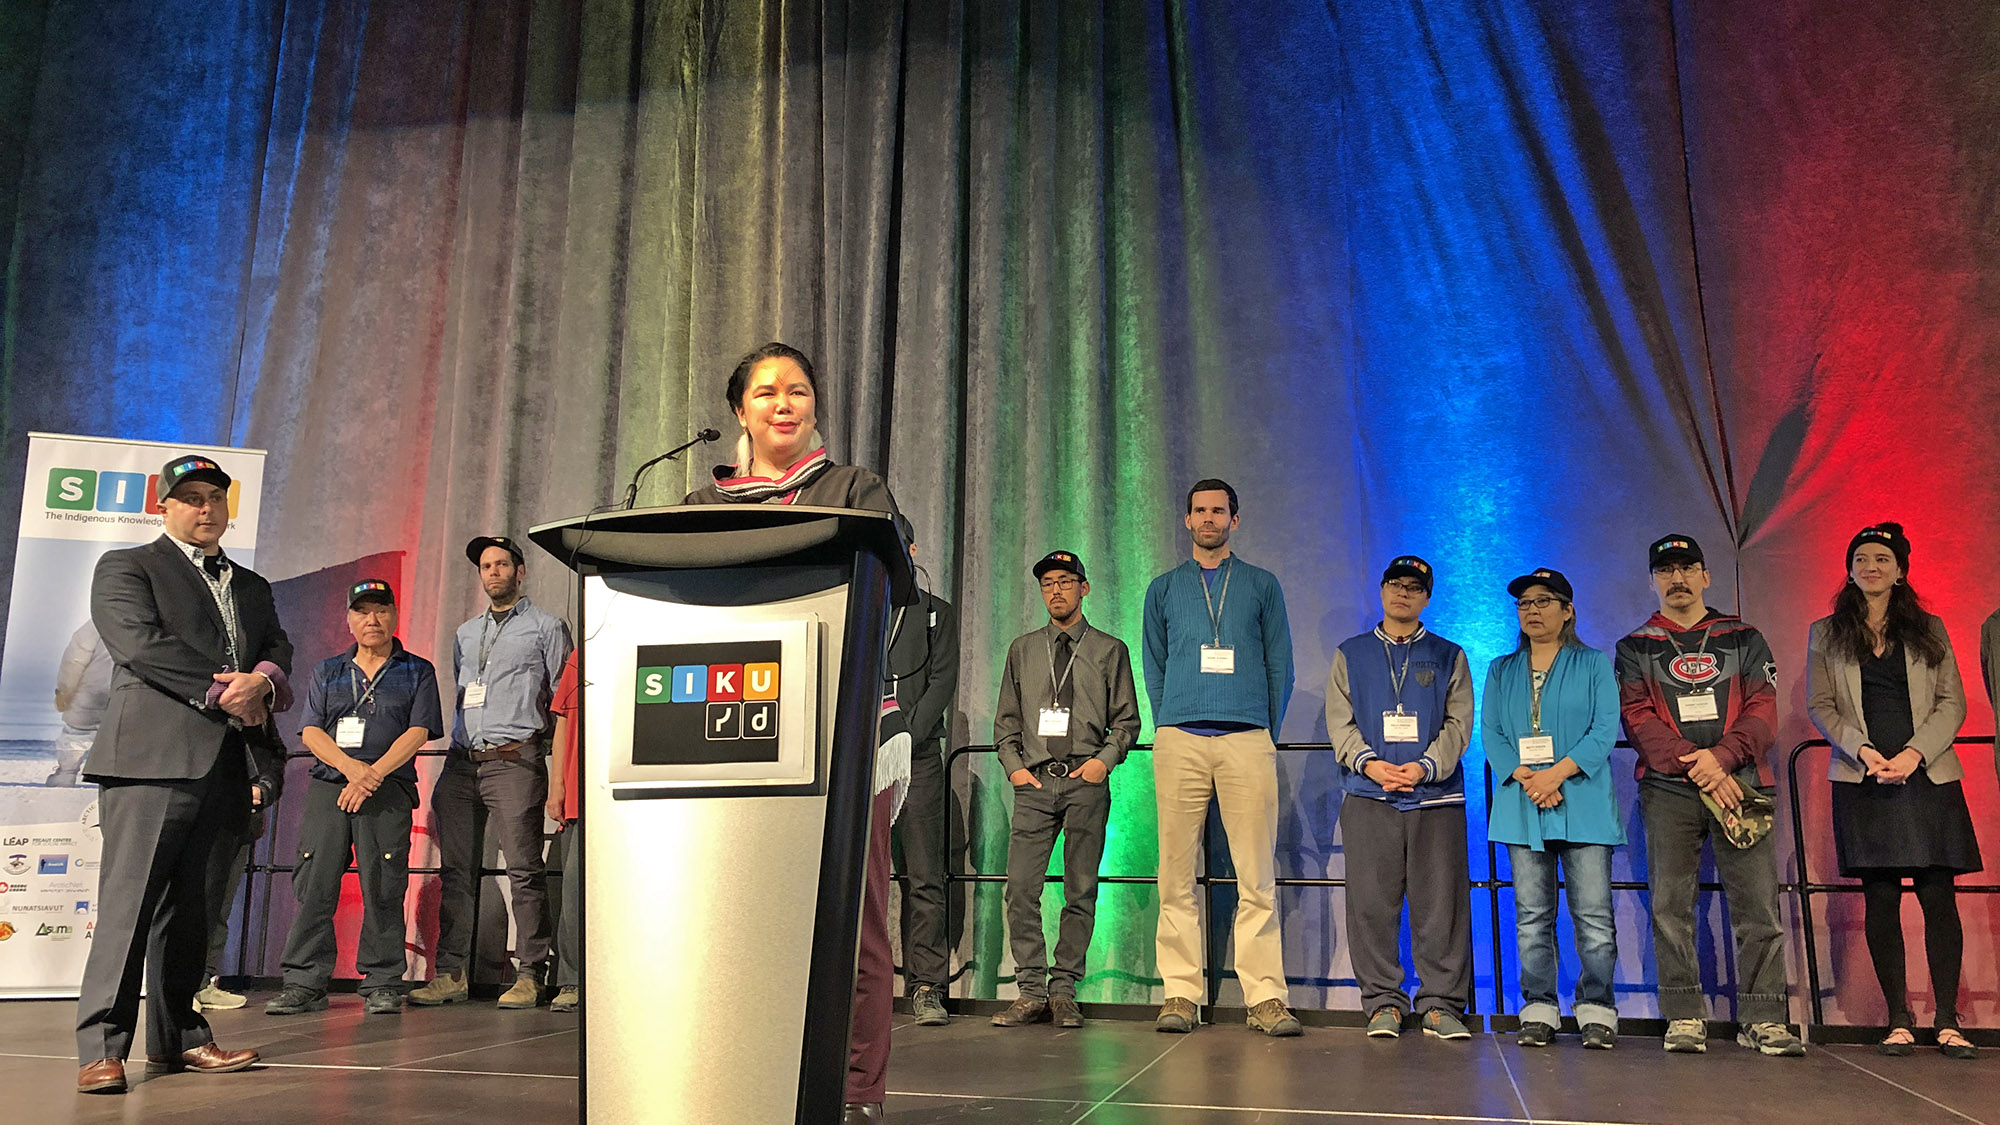 Candice Pedersen, SIKU team member, is joined by the rest of the SIKU team on stage at the Halifax Convention Centre.